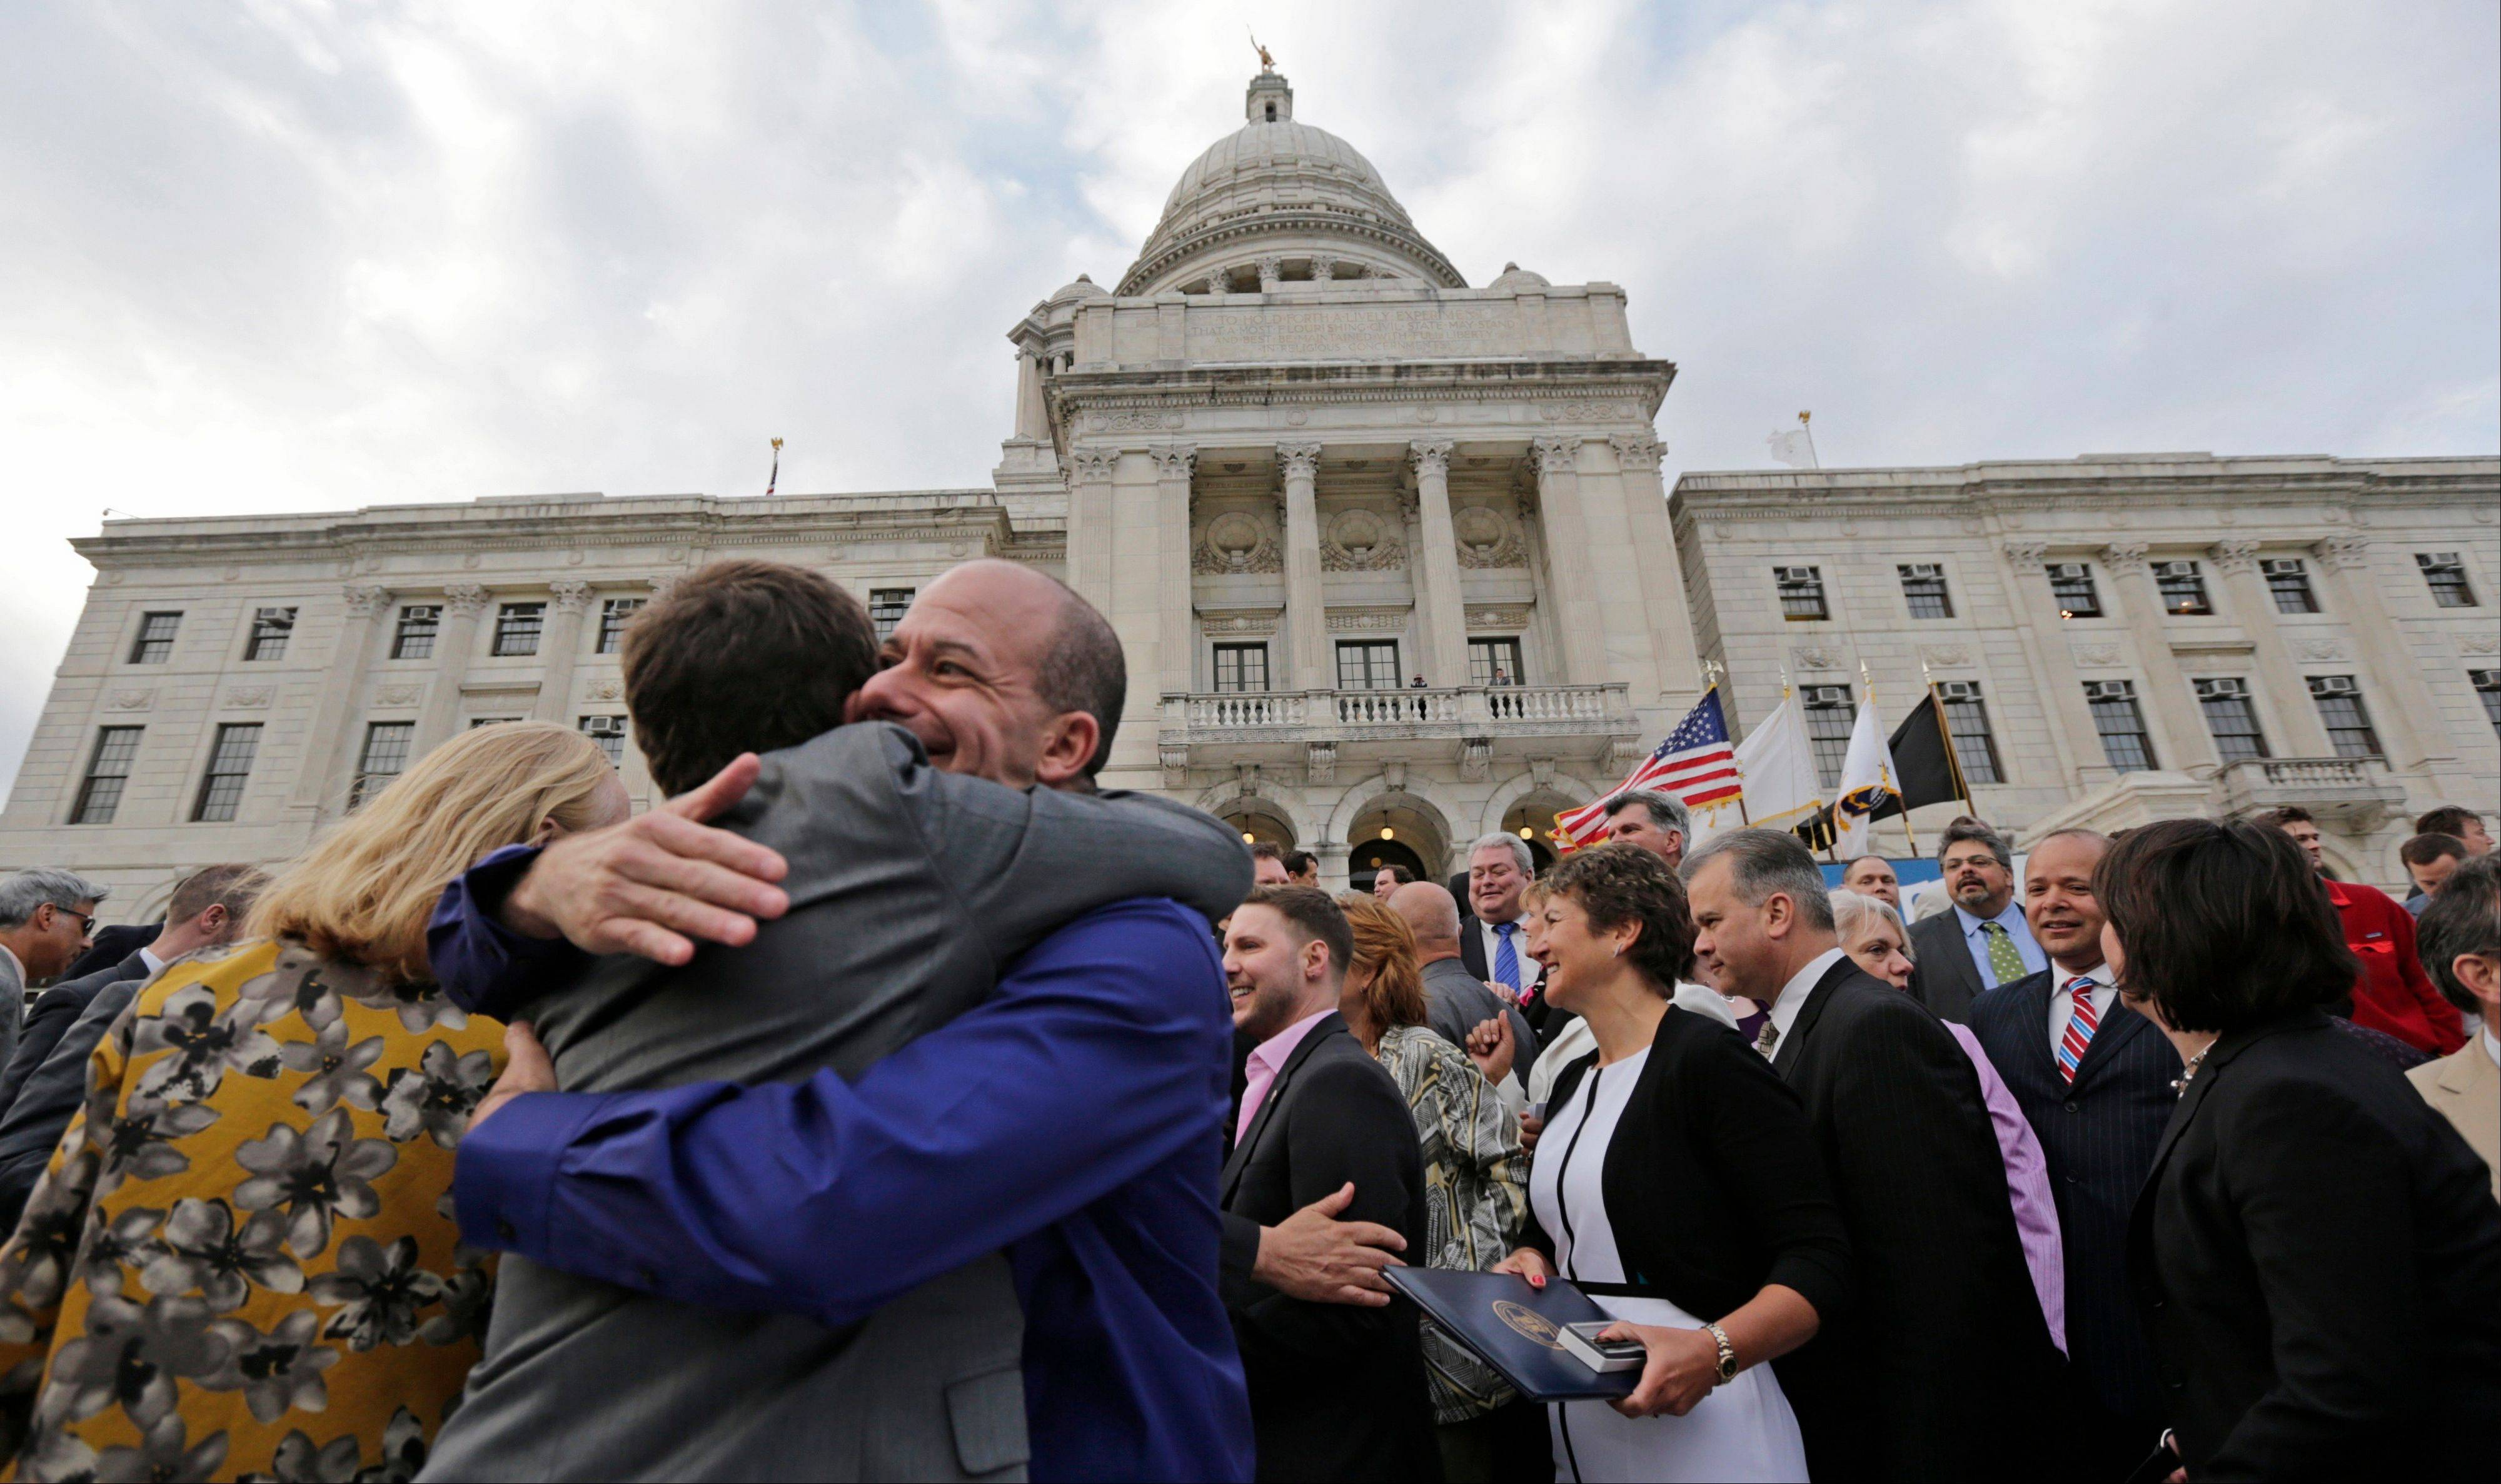 Two men embrace after a gay marriage bill was signed into law outside the State House in Providence, R.I., Thursday, May 2, 2013.